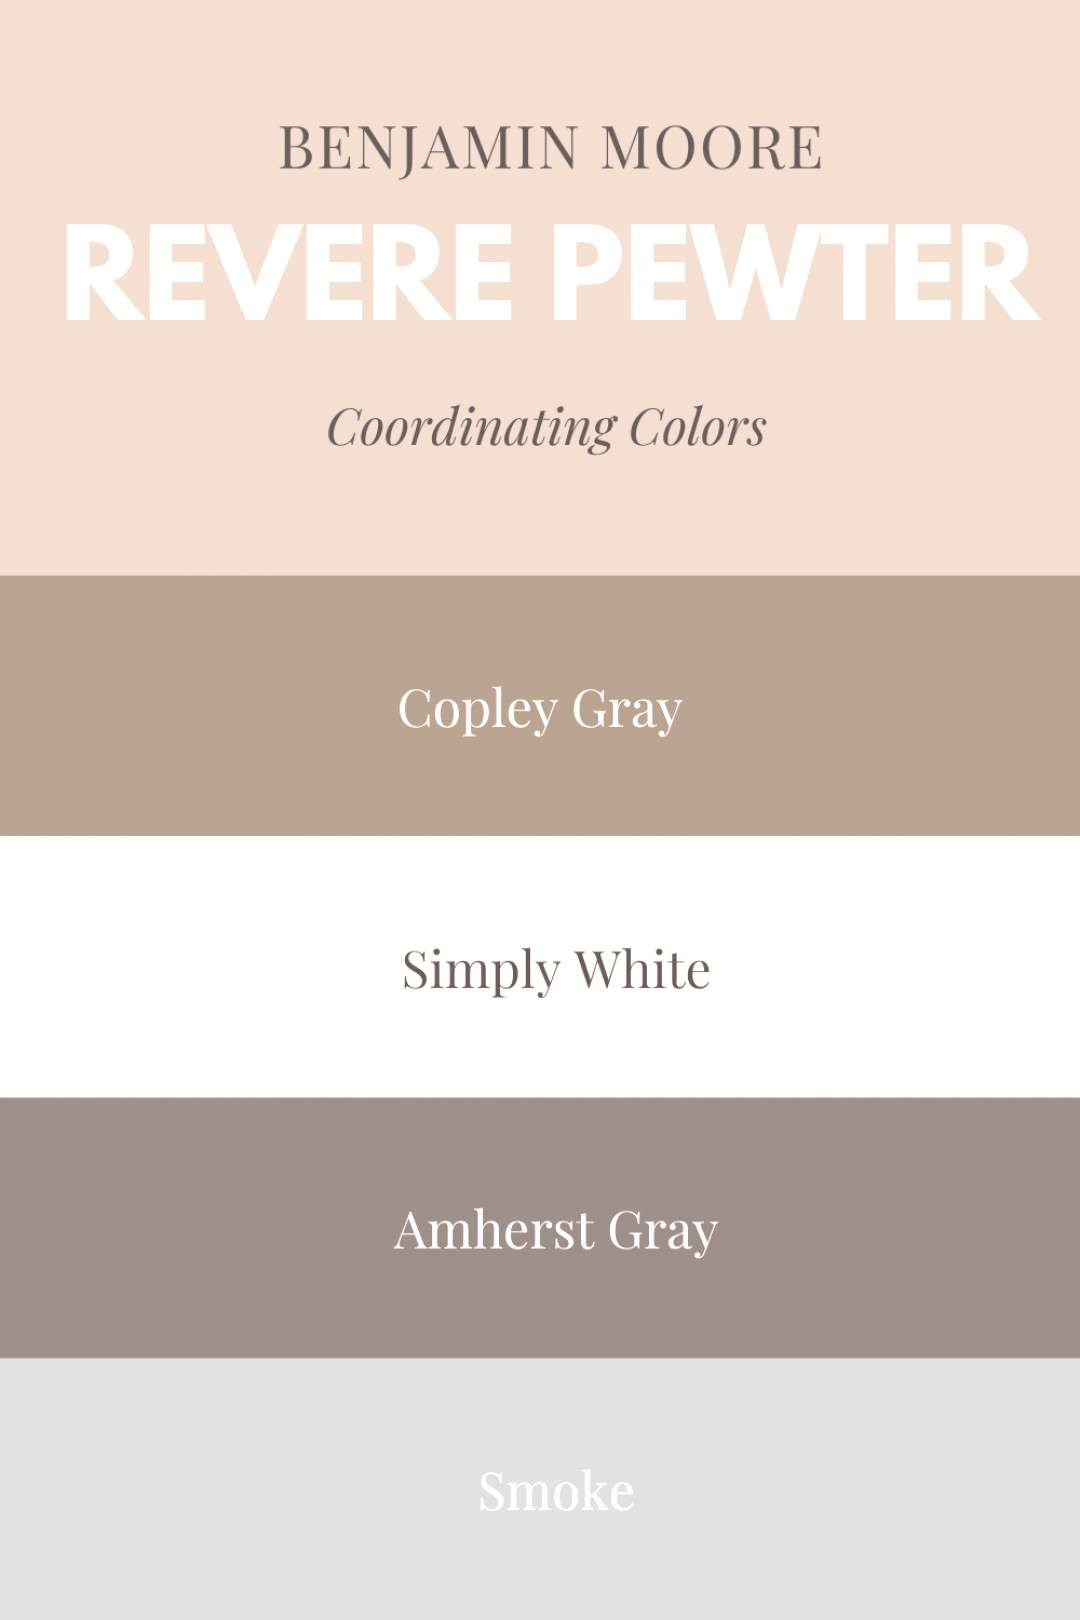 Coordinating colors with Revere Pewter |Benjamin Moore Revere Pewter| Copley Gray| Simply White| Am